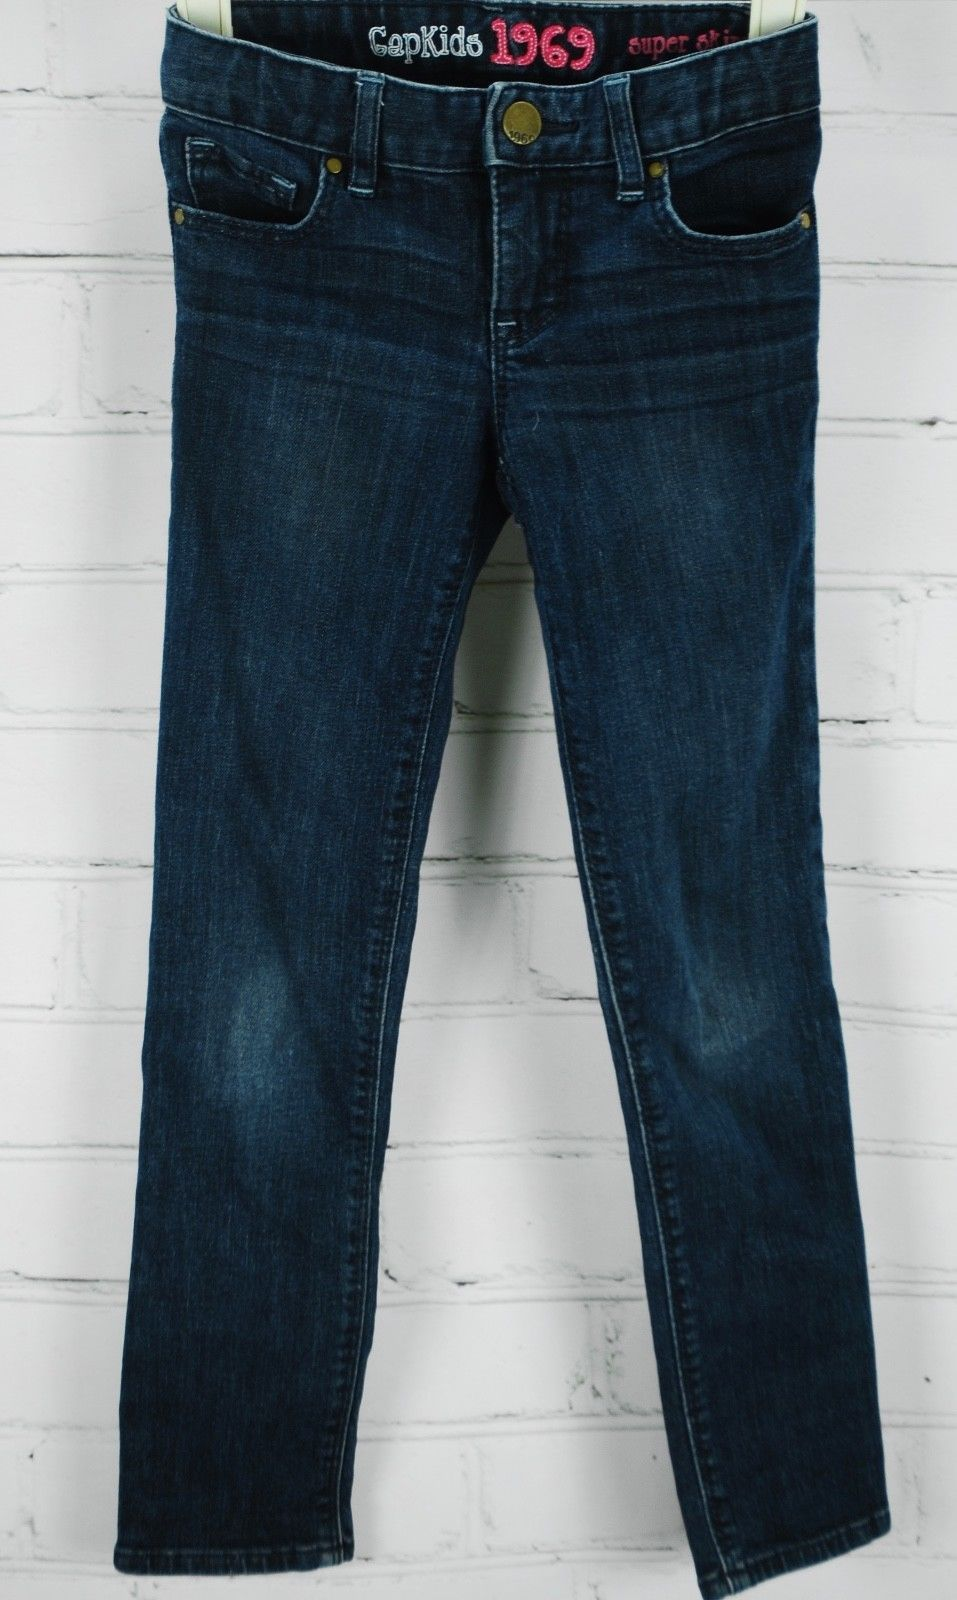 16be82e8a6592b Gap Kids Girl's Super Skinny Jeans 1969 Size and 15 similar items. 57